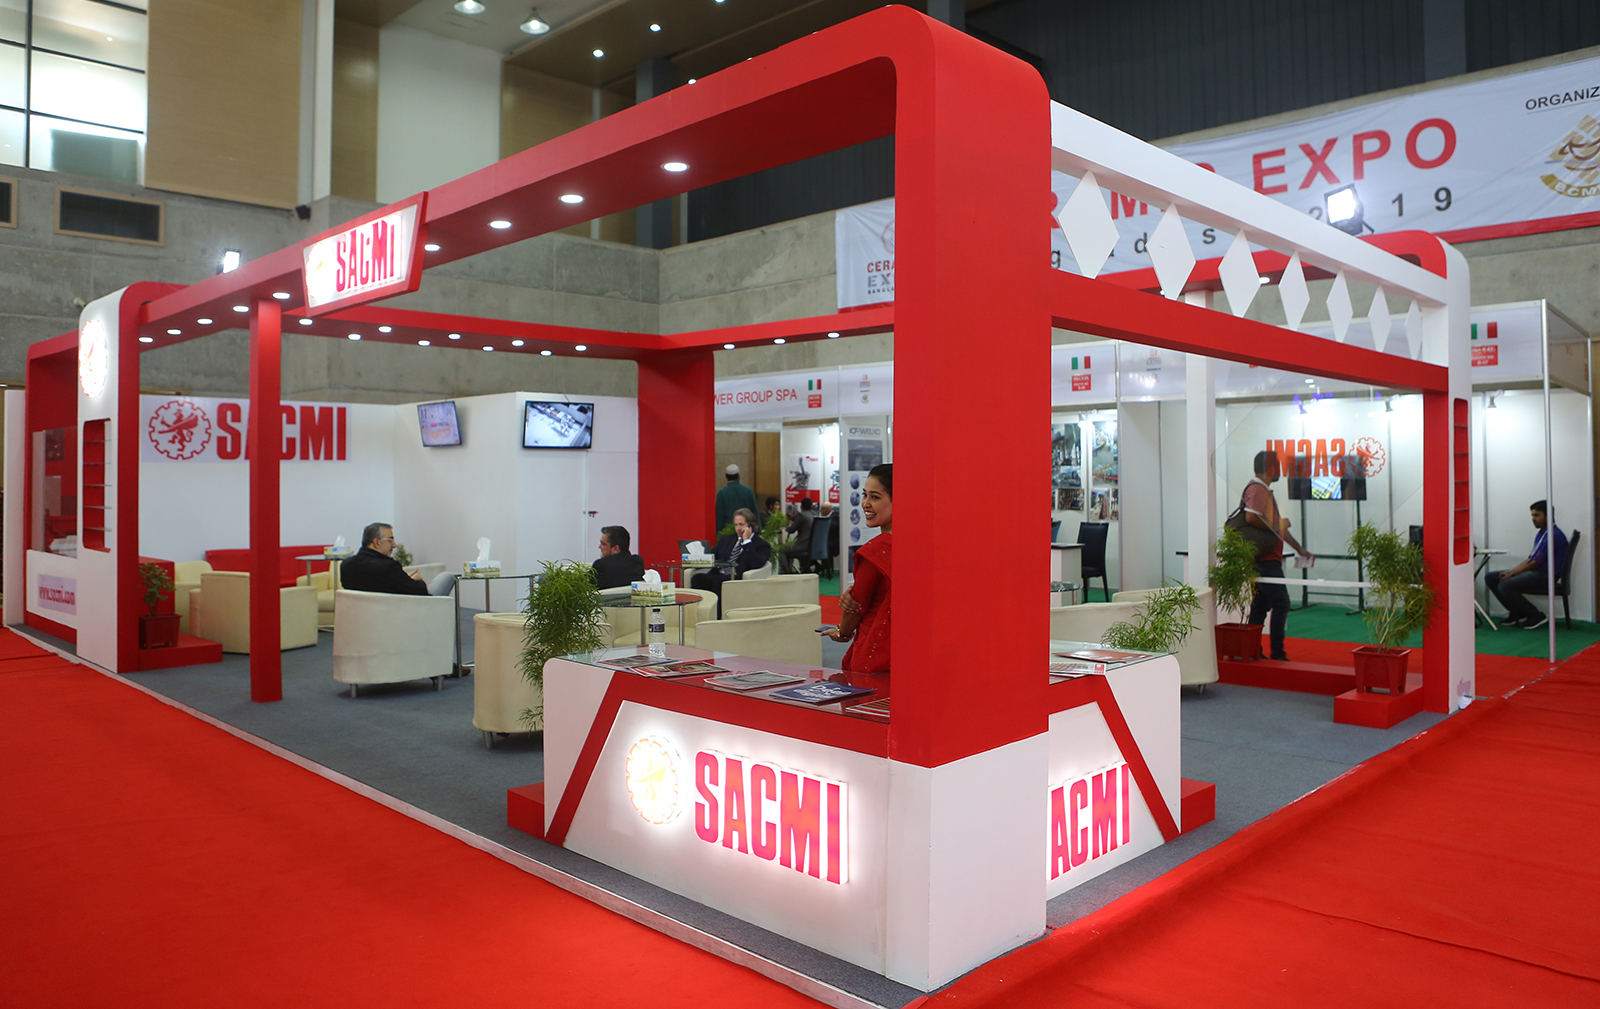 Ceramic Expo Bangladesh doubles its capacity, with SACMI playing a leading role